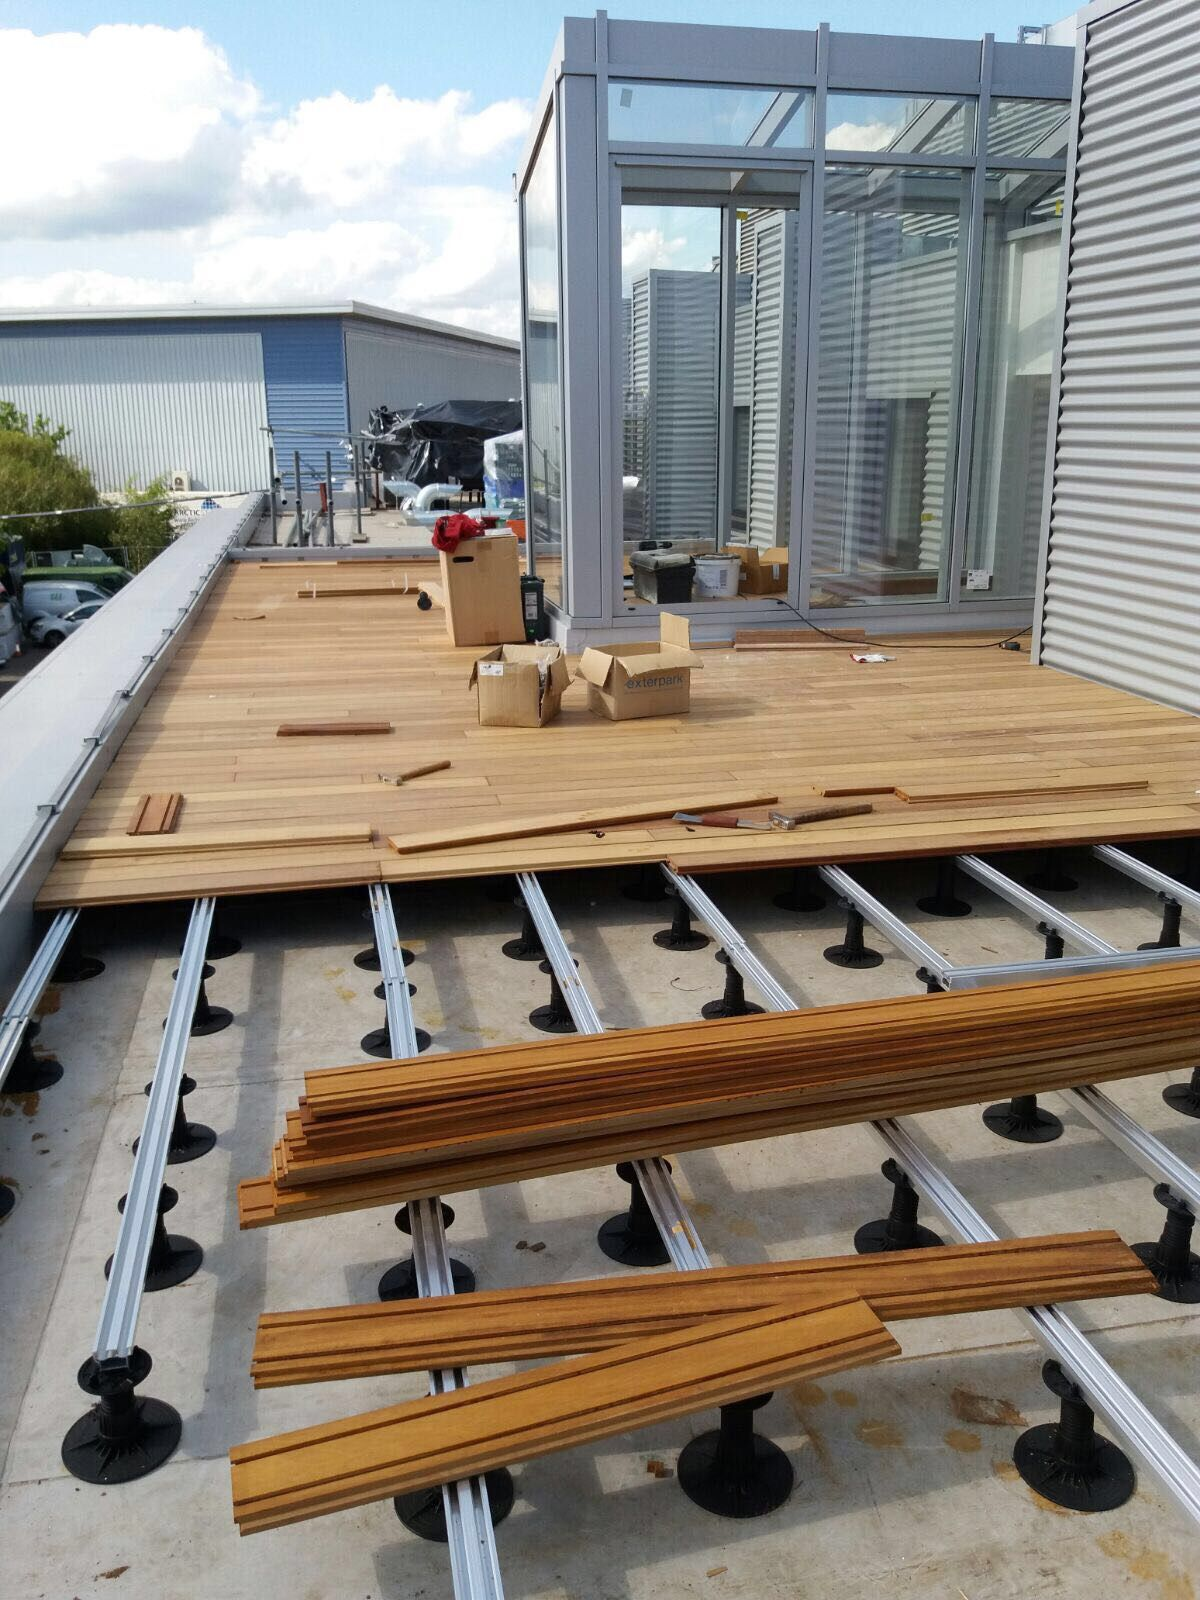 Elondo Hardwood Decking With Exterpark Magnet Fixing System